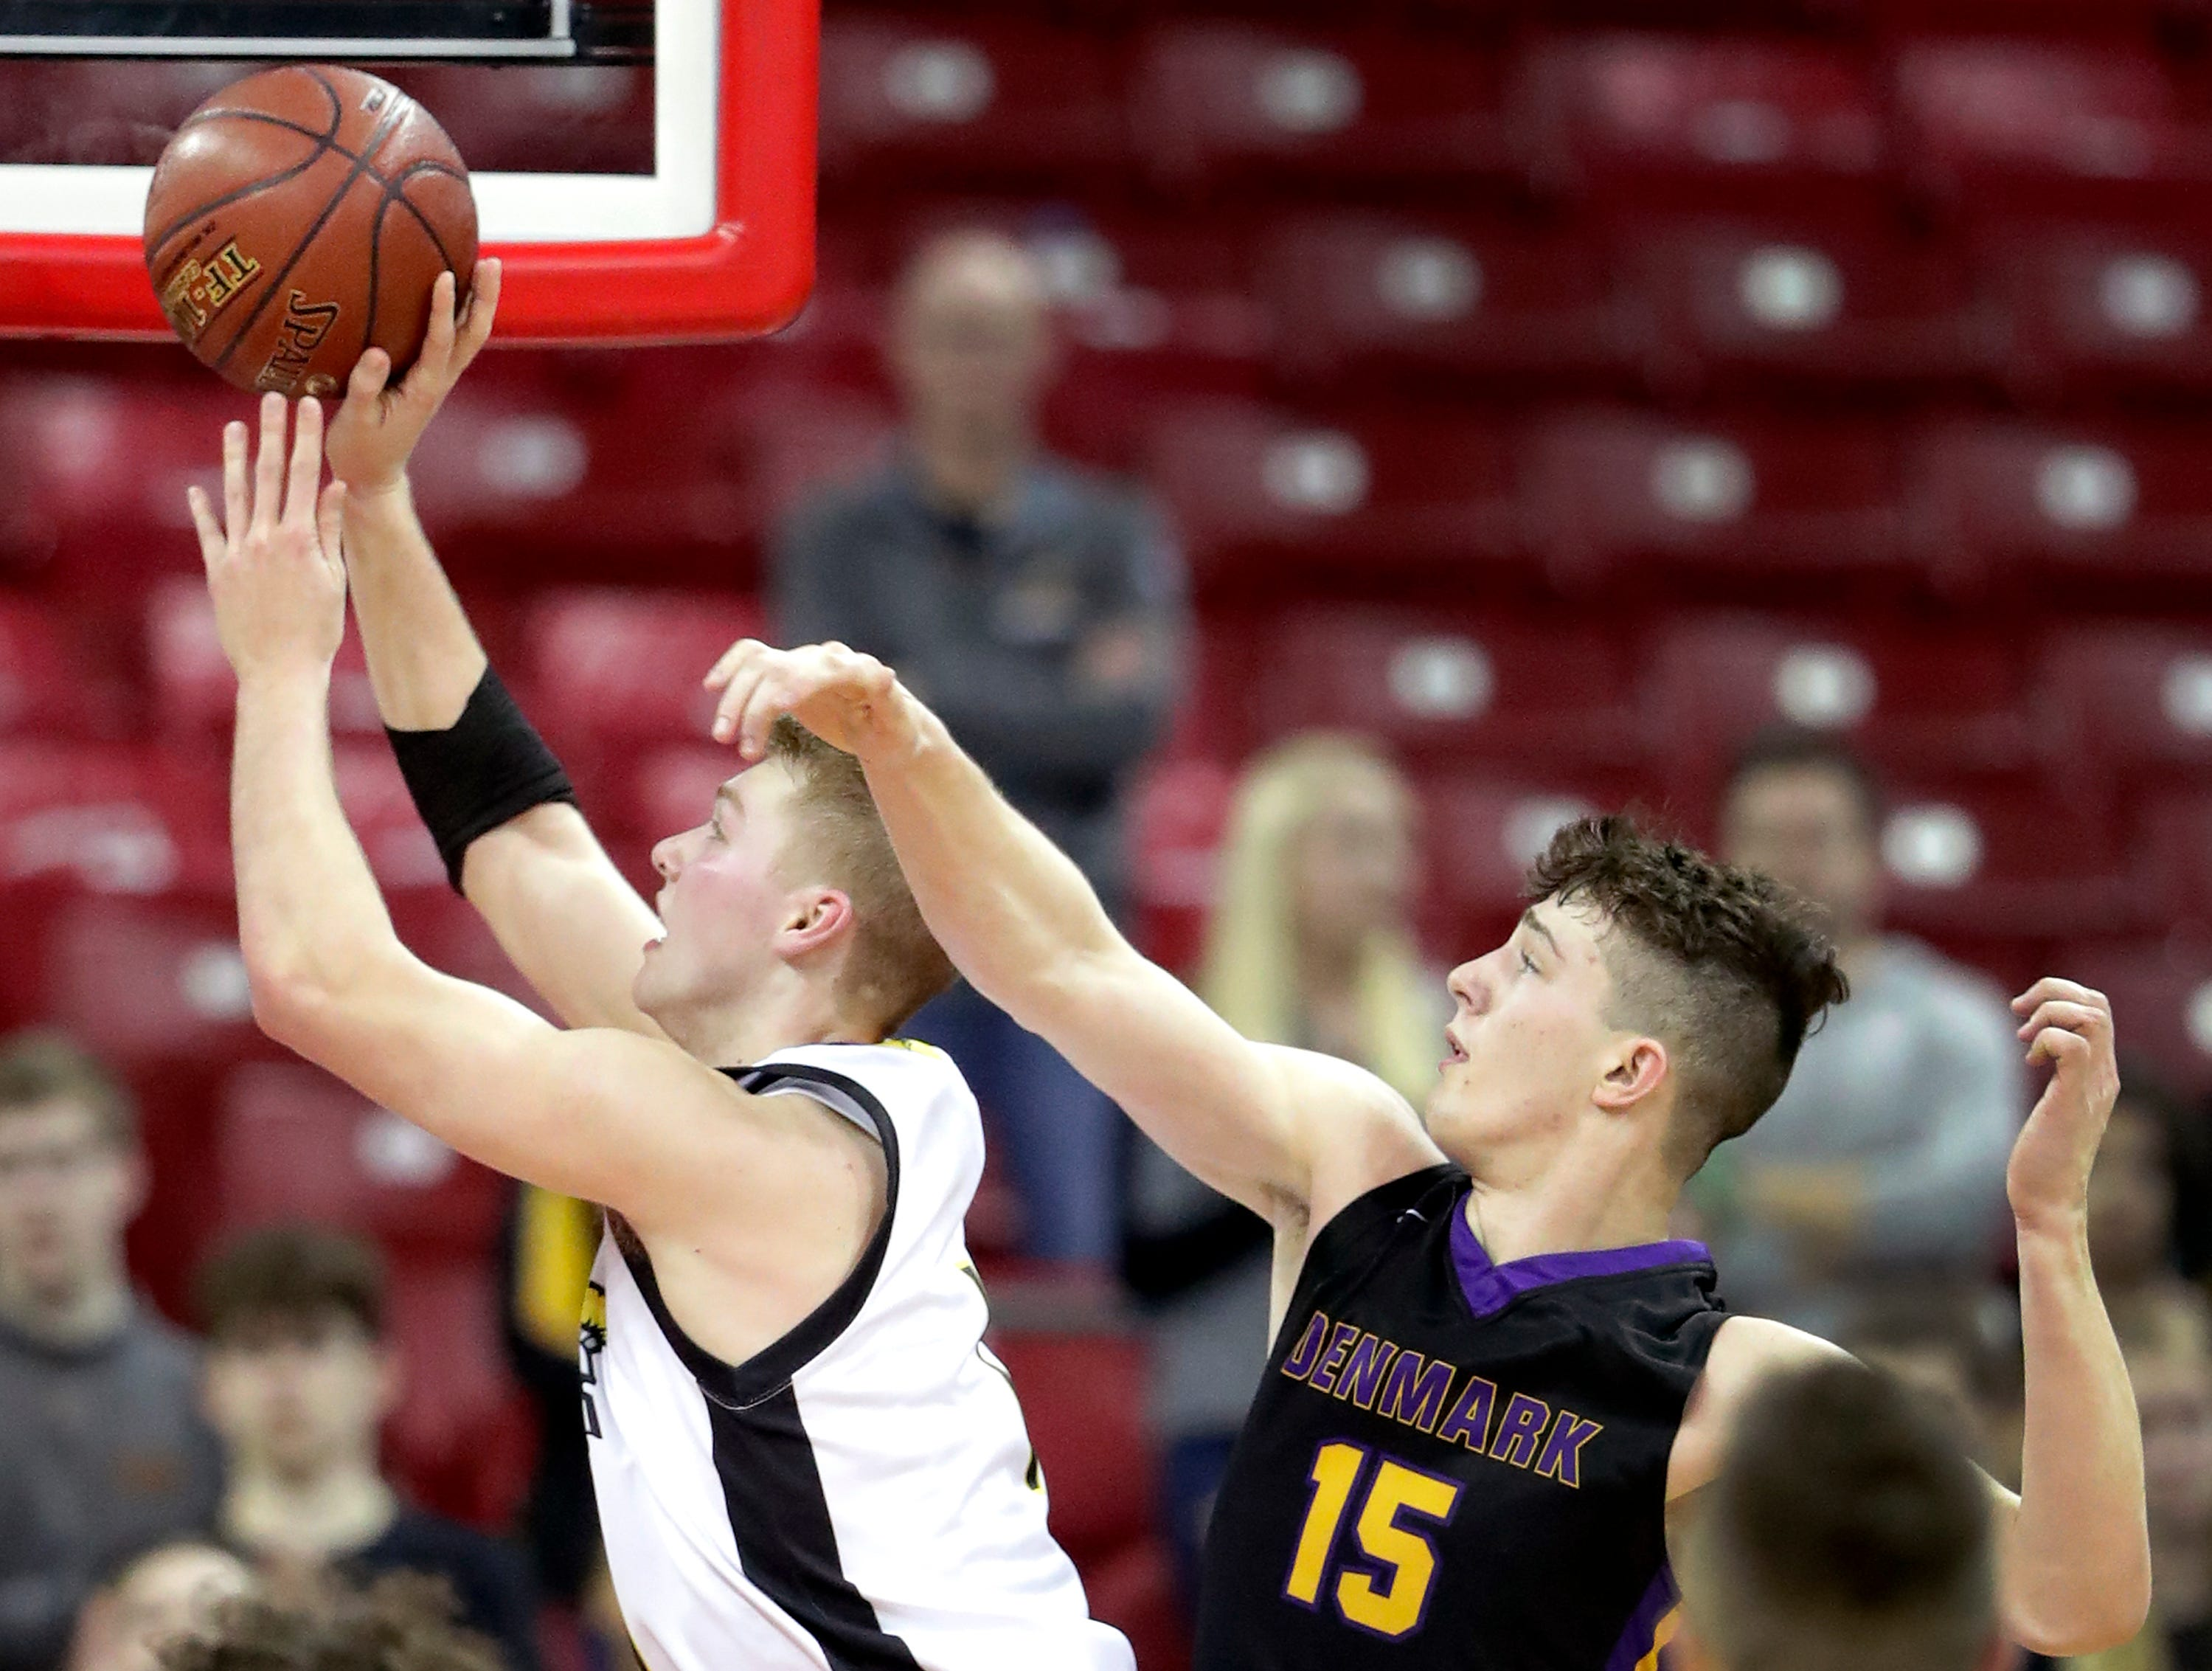 Denmark High School's #15 Zane Short against Waupun High School's #1 Marcus Domask during their WIAA Division 3 boys basketball state semifinal on Thursday, March 14, 2019, at the KohlCenter in Madison, Wis.  Waupun defeated Denmark 60 to 43.